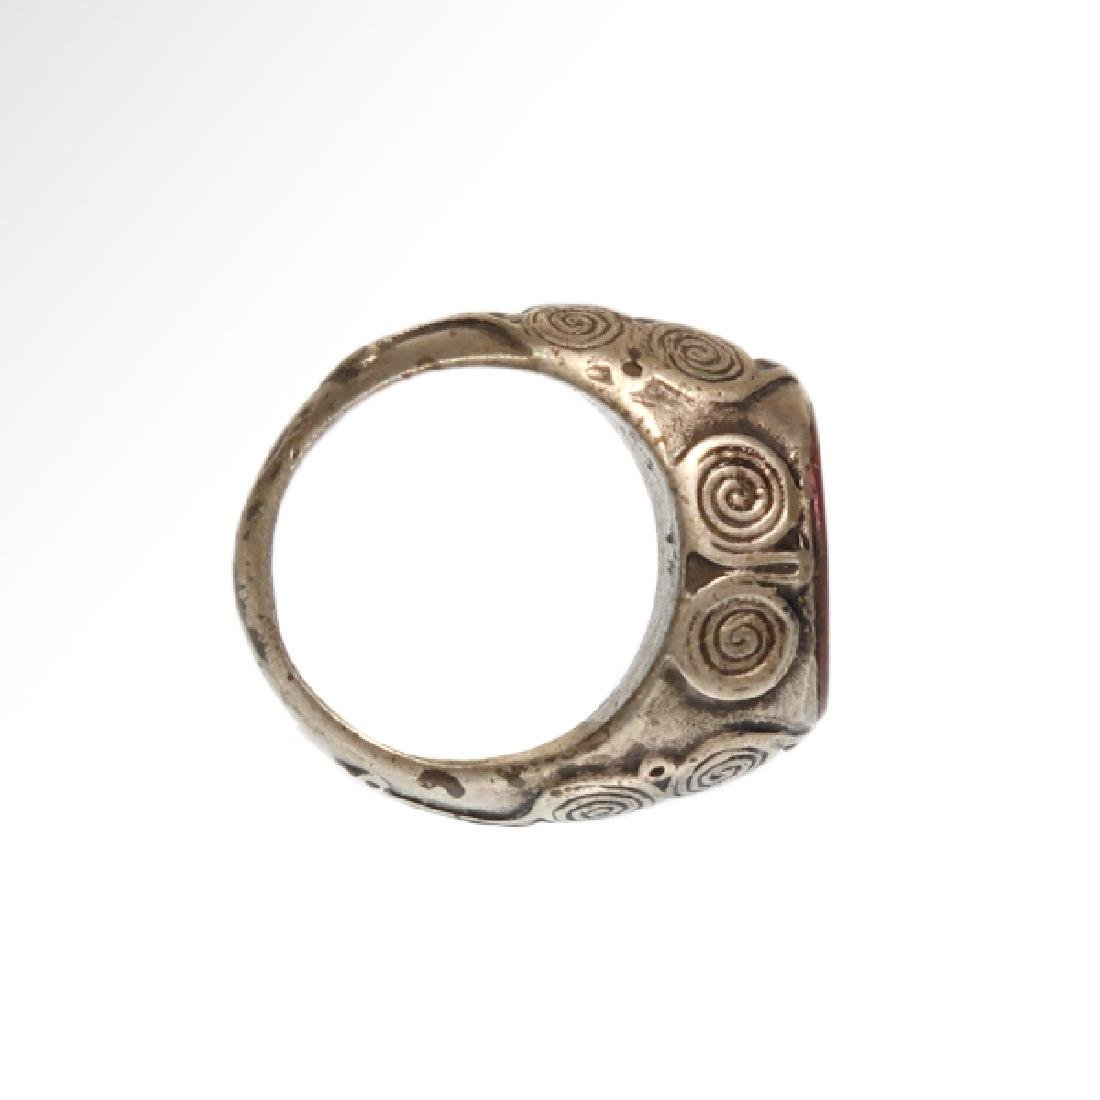 Viking Silver and Cornelian Ring, c. 10th Century A.D. - 2